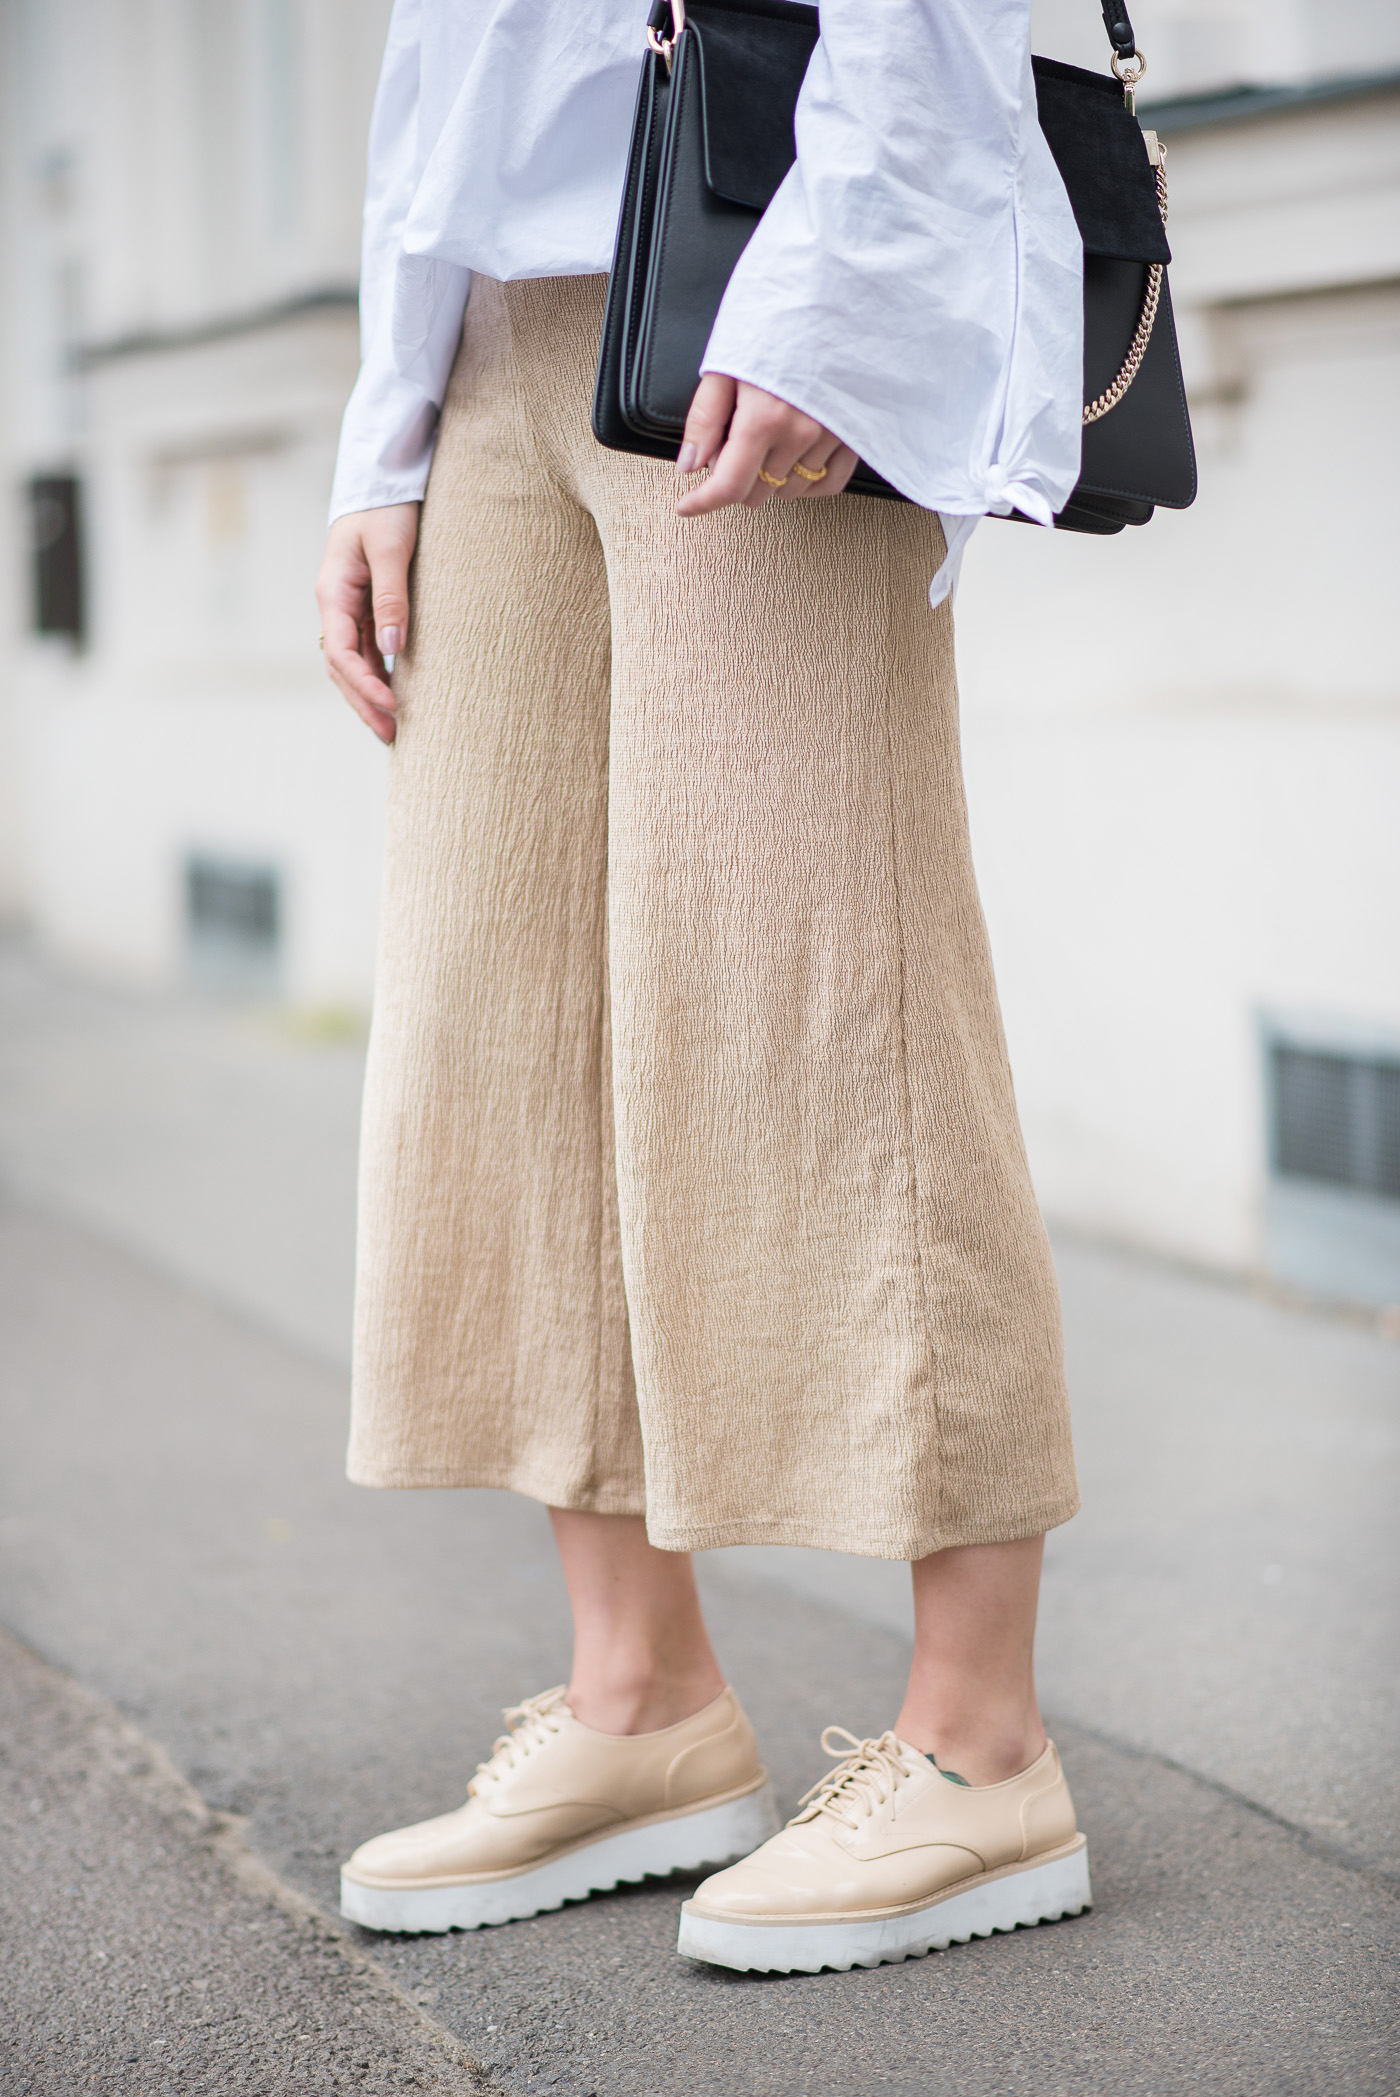 Culotte_&_Platforms_Outfit_5